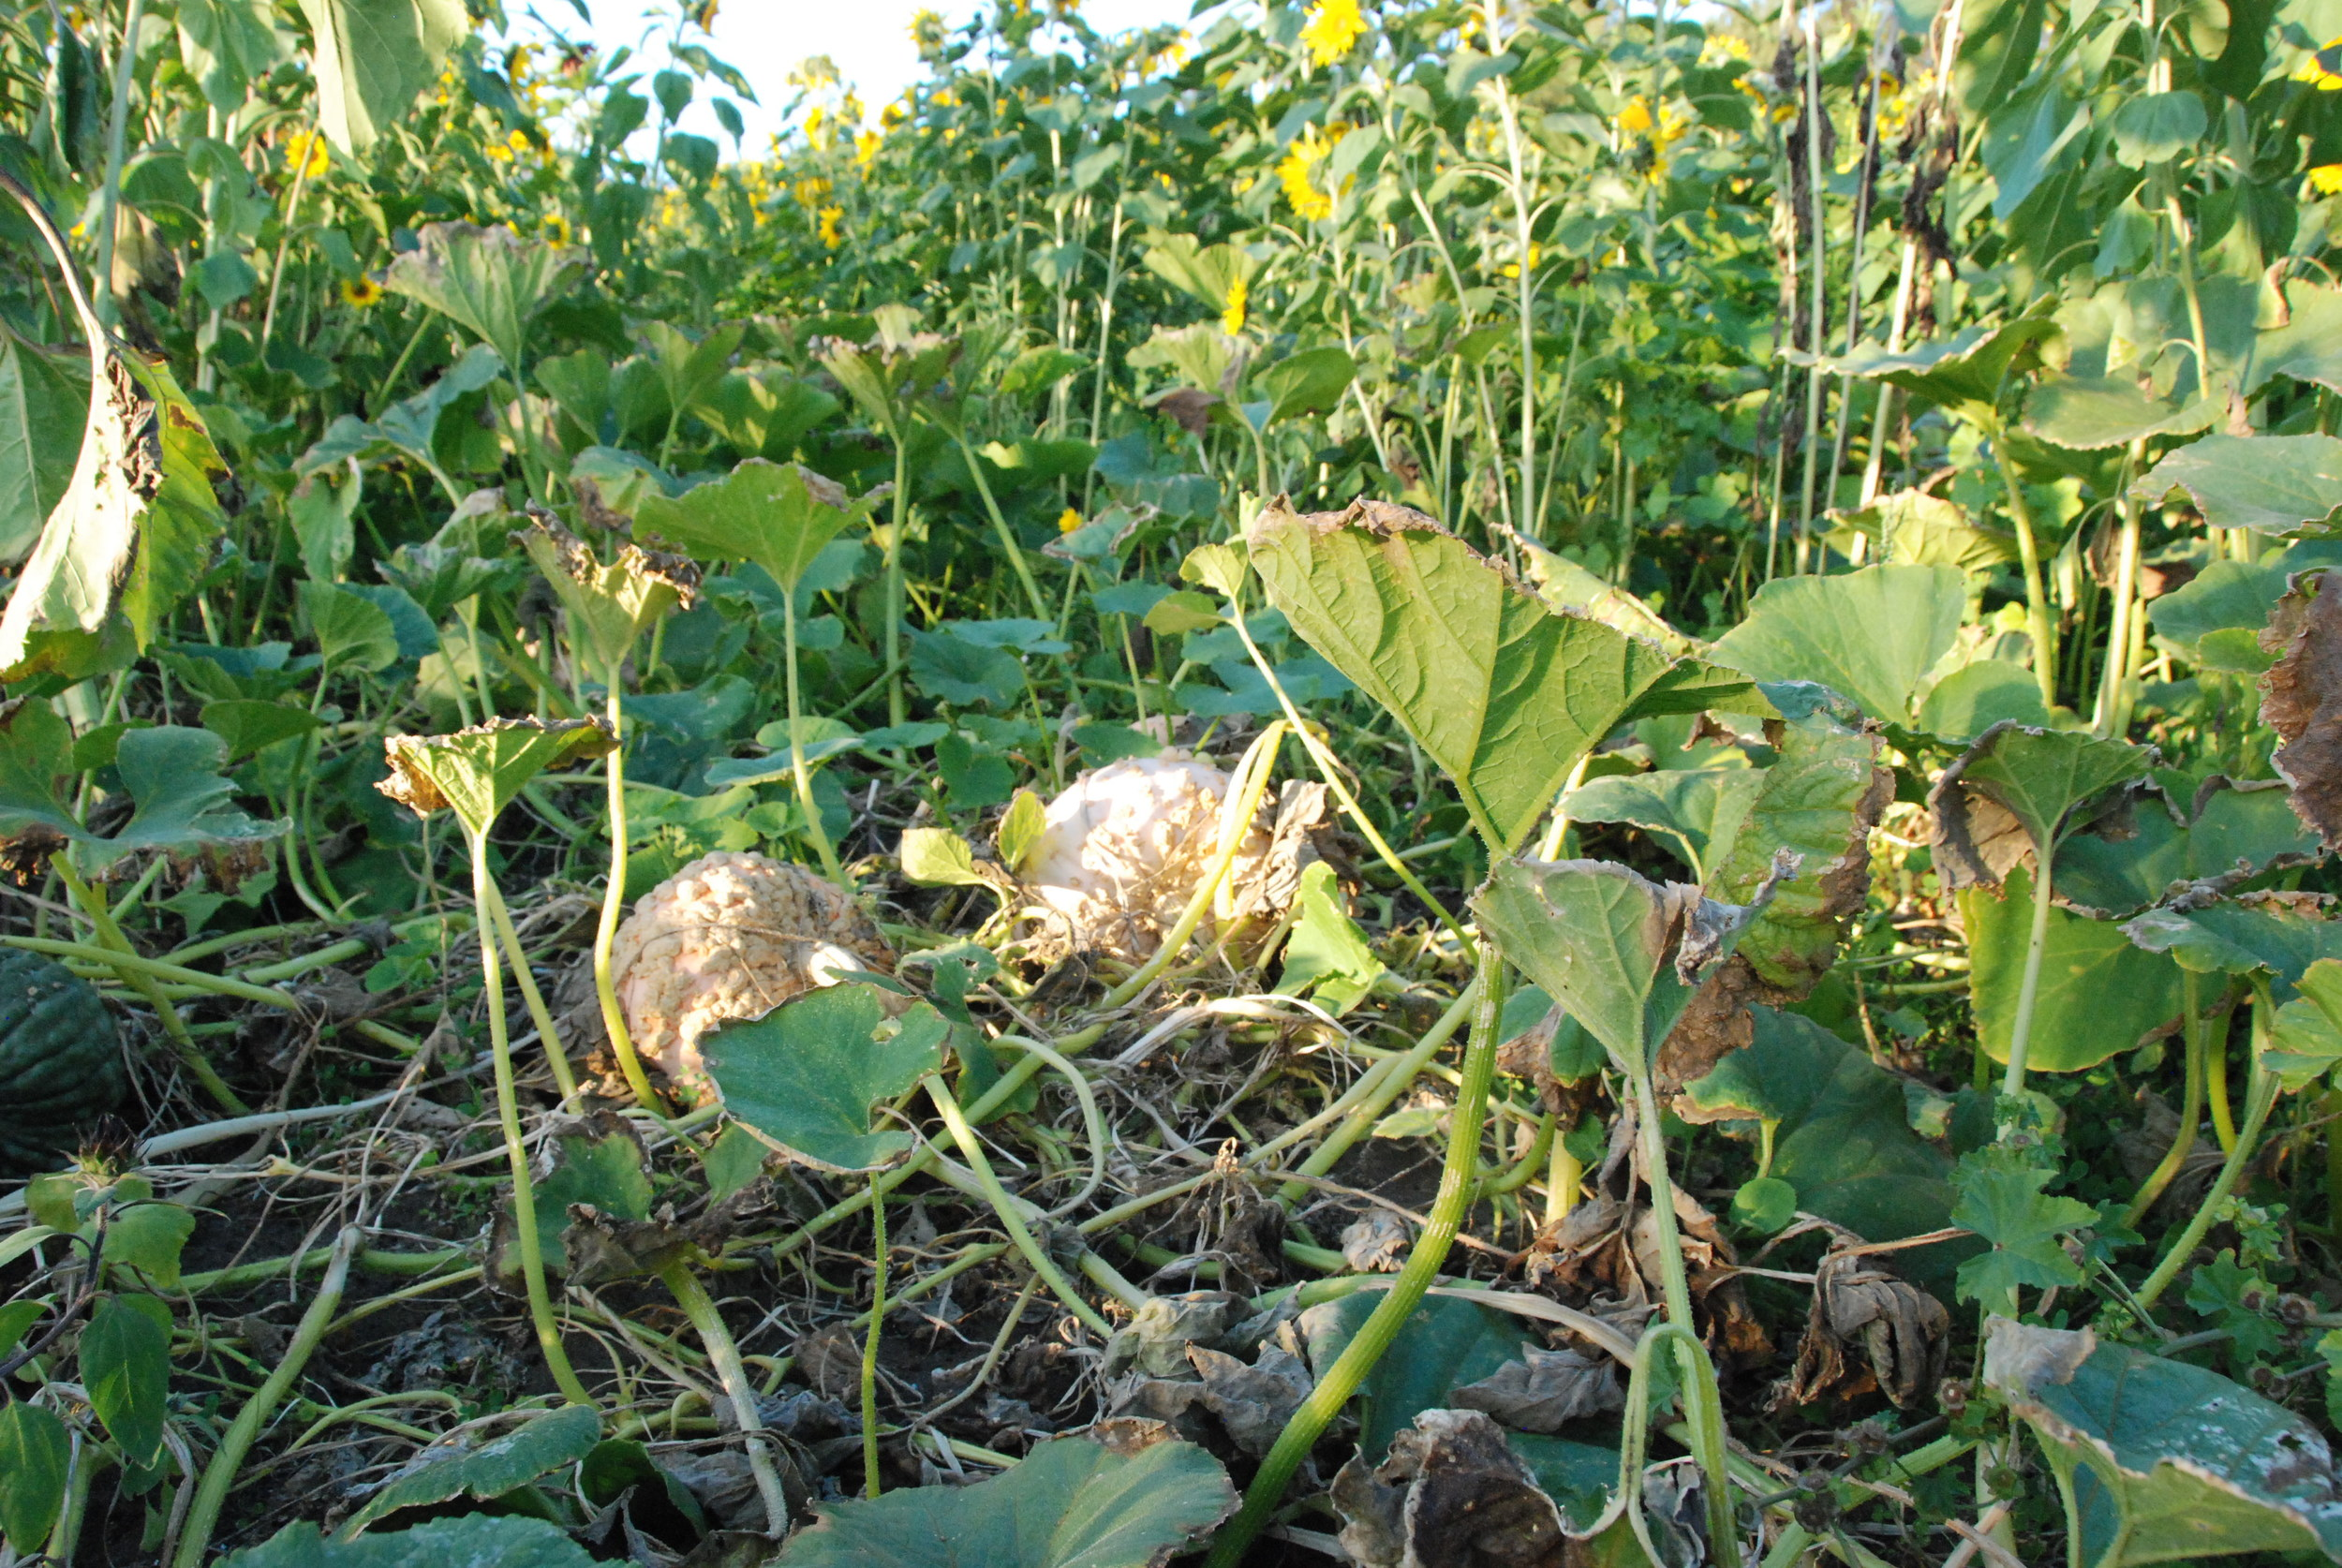 Pumpkins ripening in the field